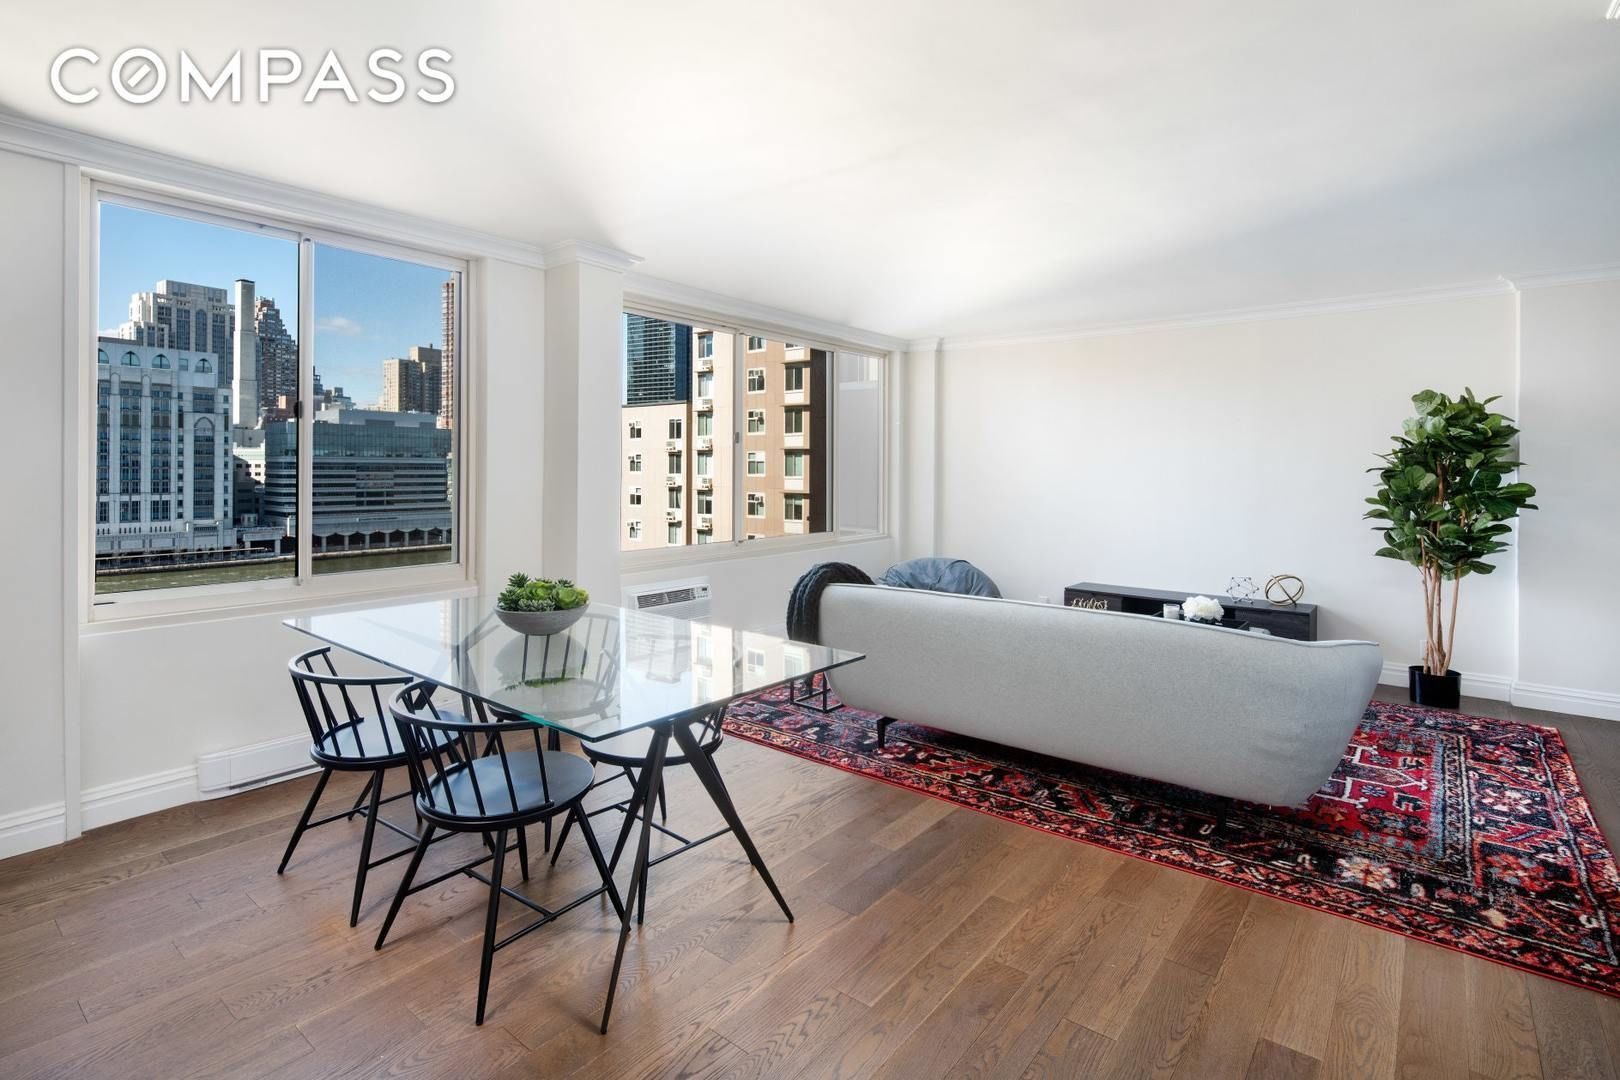 Apartment for sale at 555 Main Street, Apt 1313